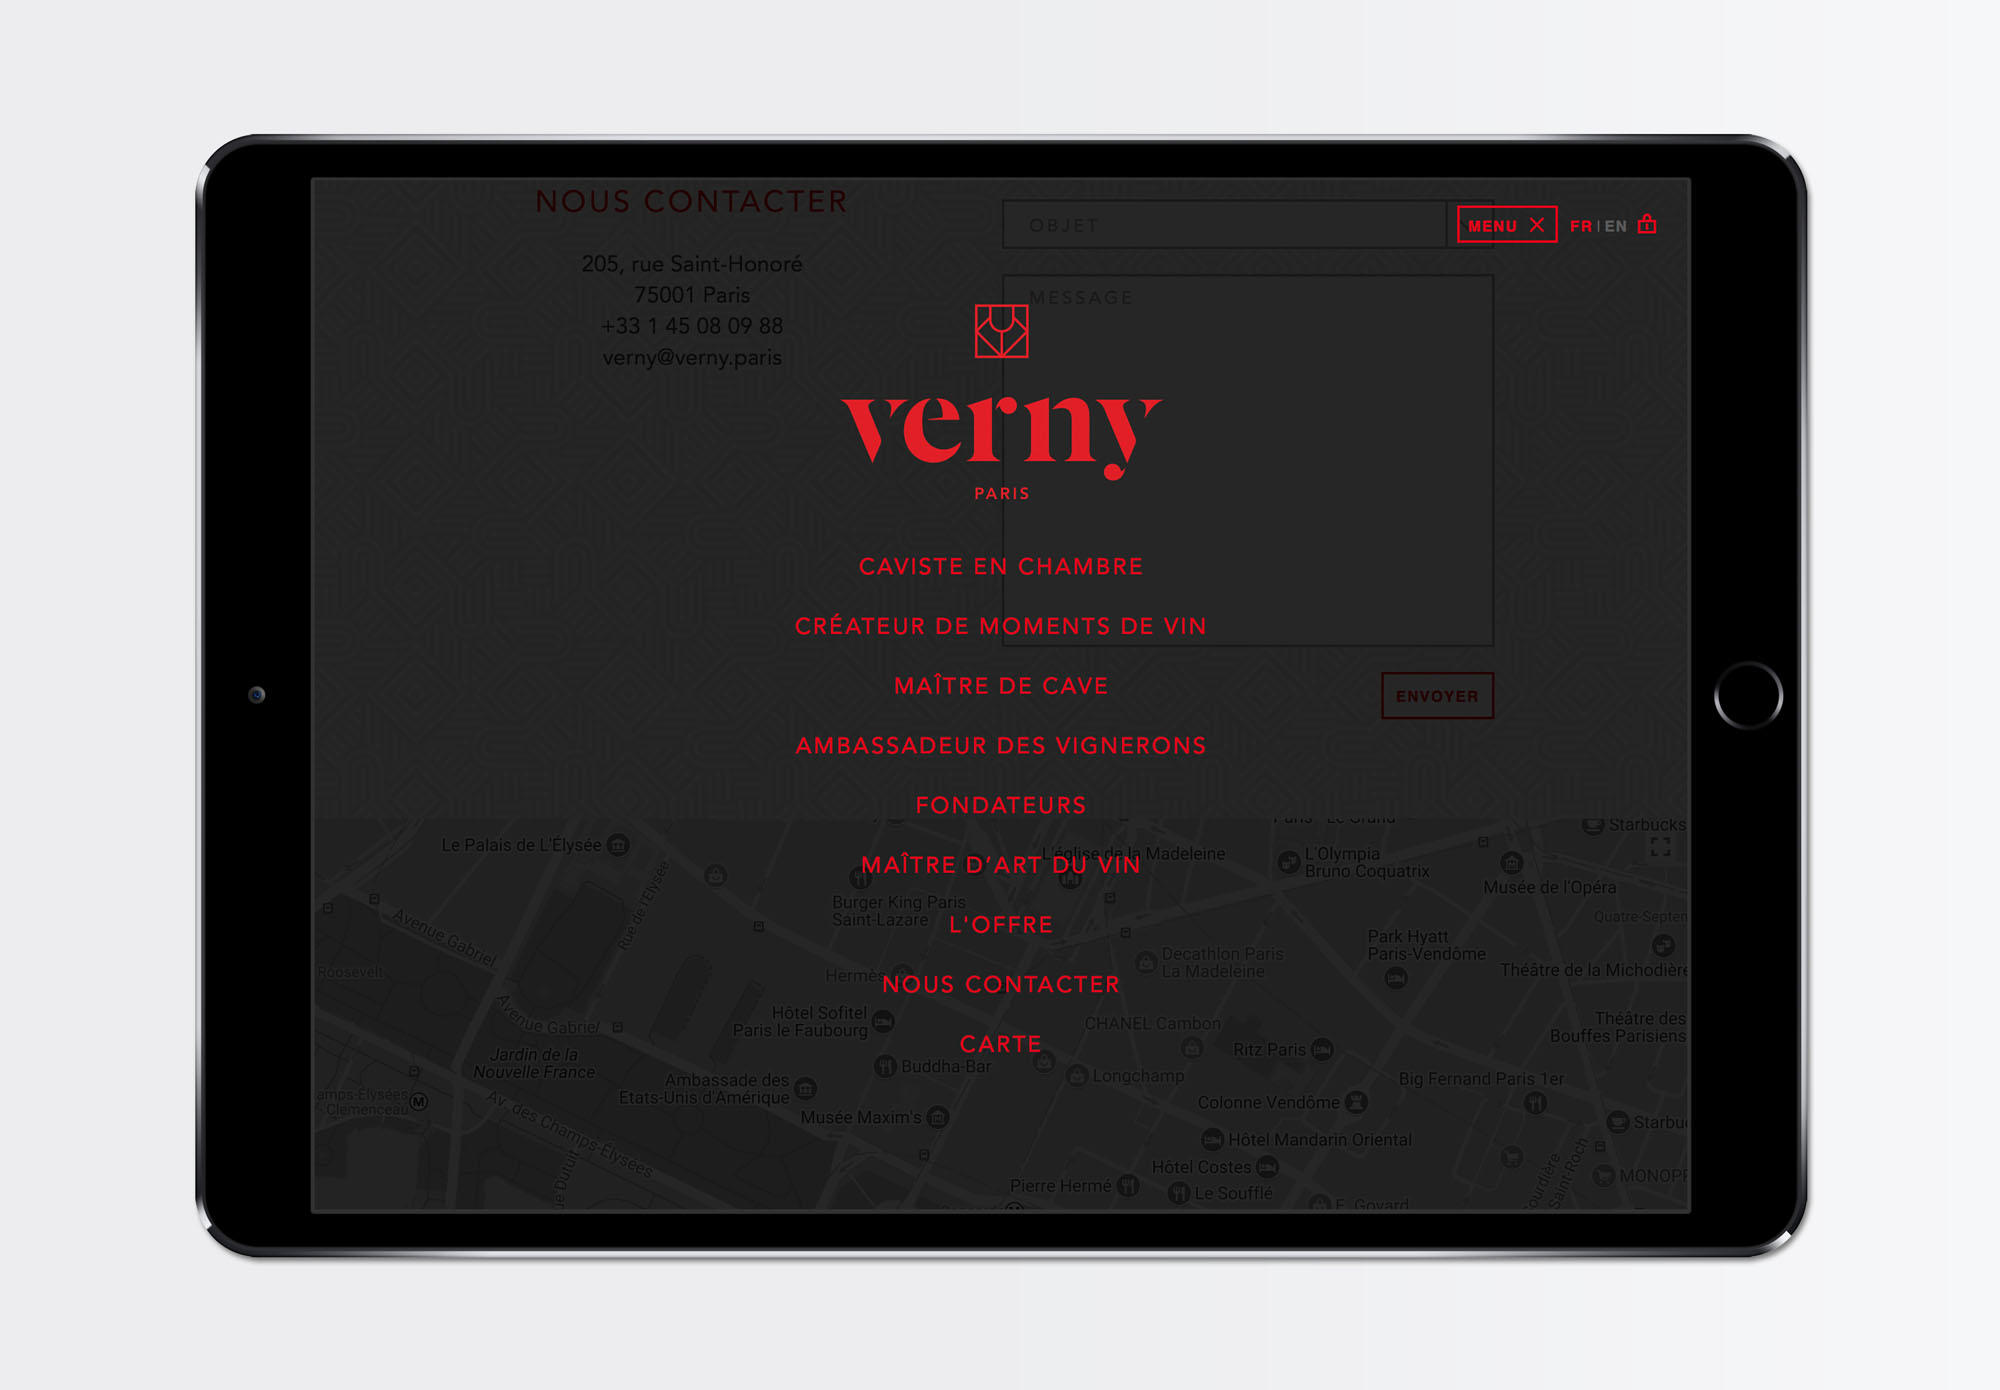 Verny Paris - site internet - menu - caviste